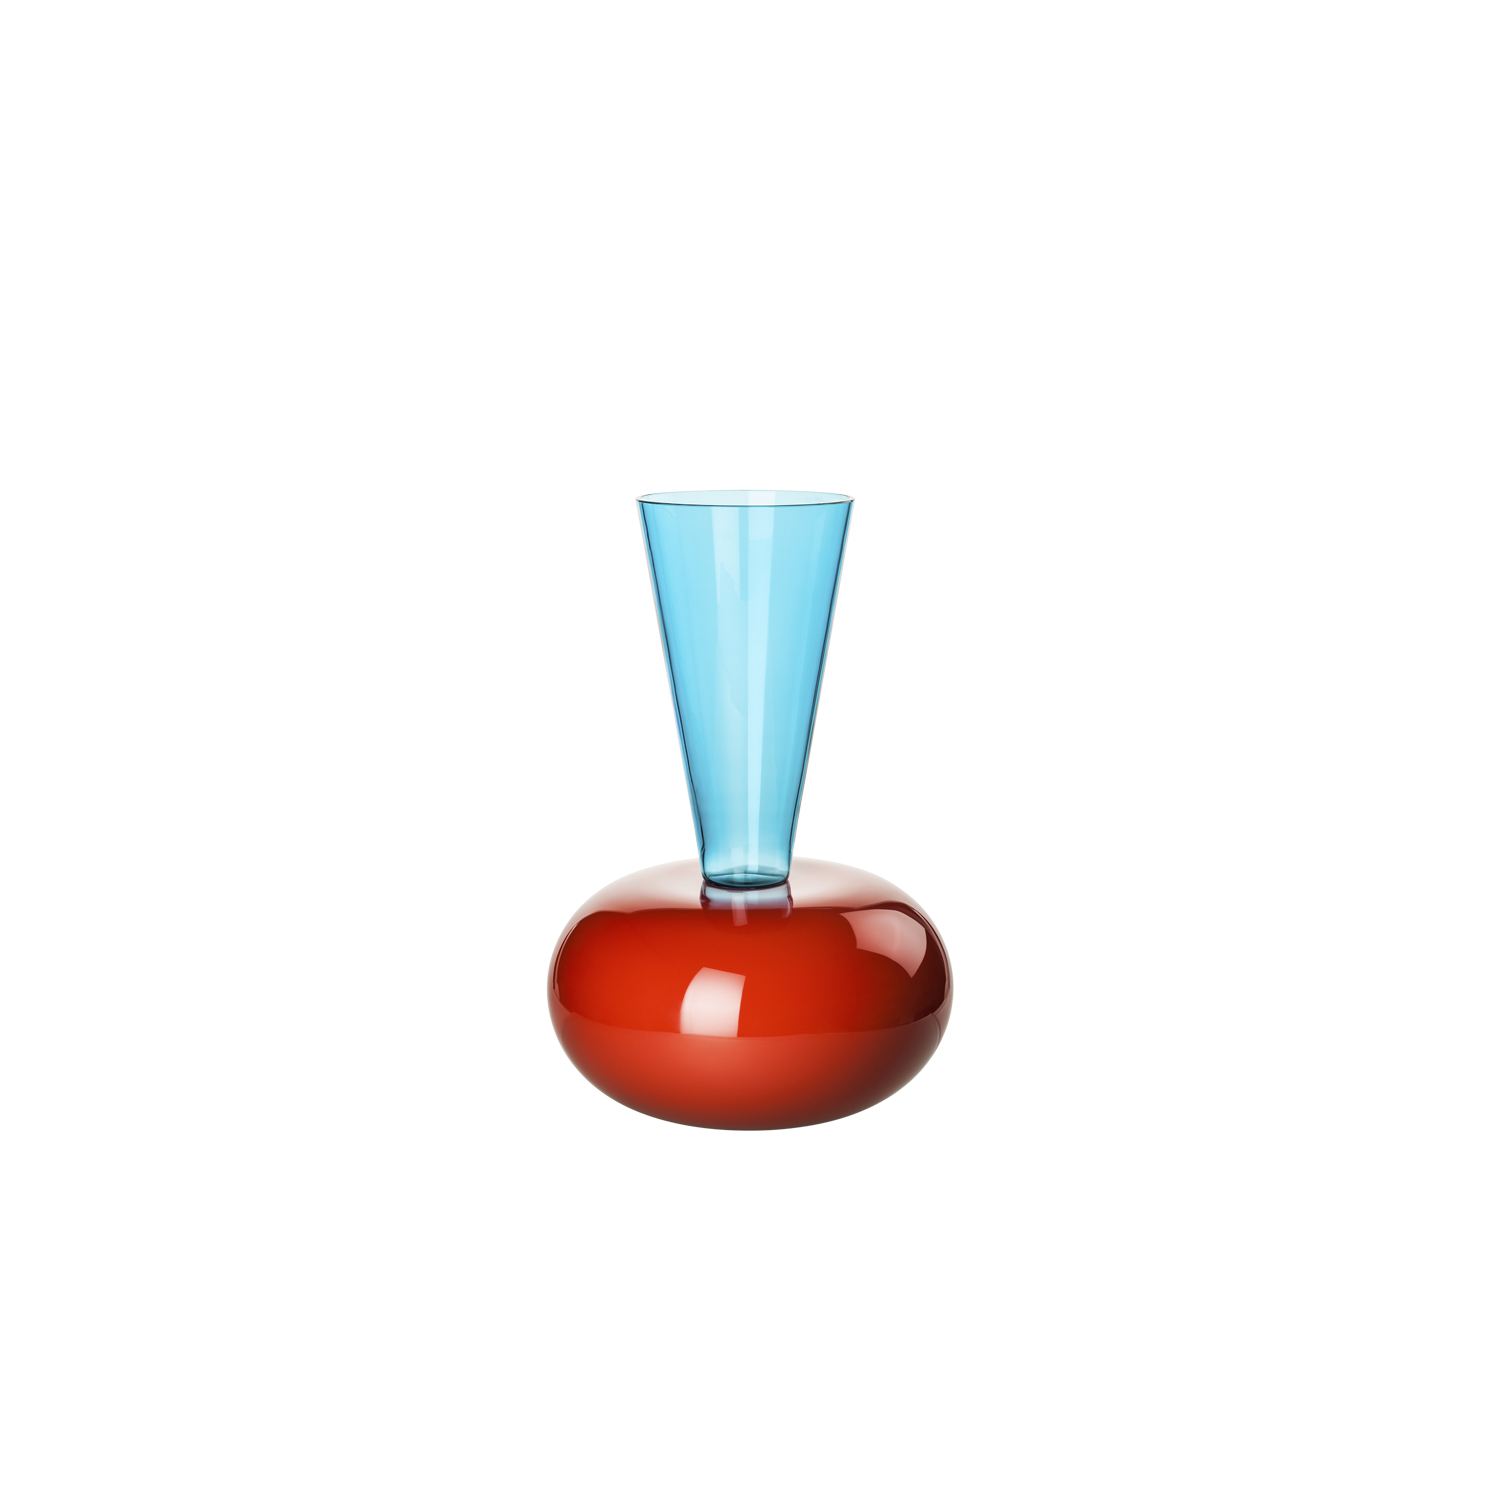 Puzzle Vase - Architecture turns into design. Magnificence turns into elegance. Coral meets Aquamarine, then it blends into Grey. This glass creation by Ettore Sottsass has a soul and a strong character   Matter of Stuff